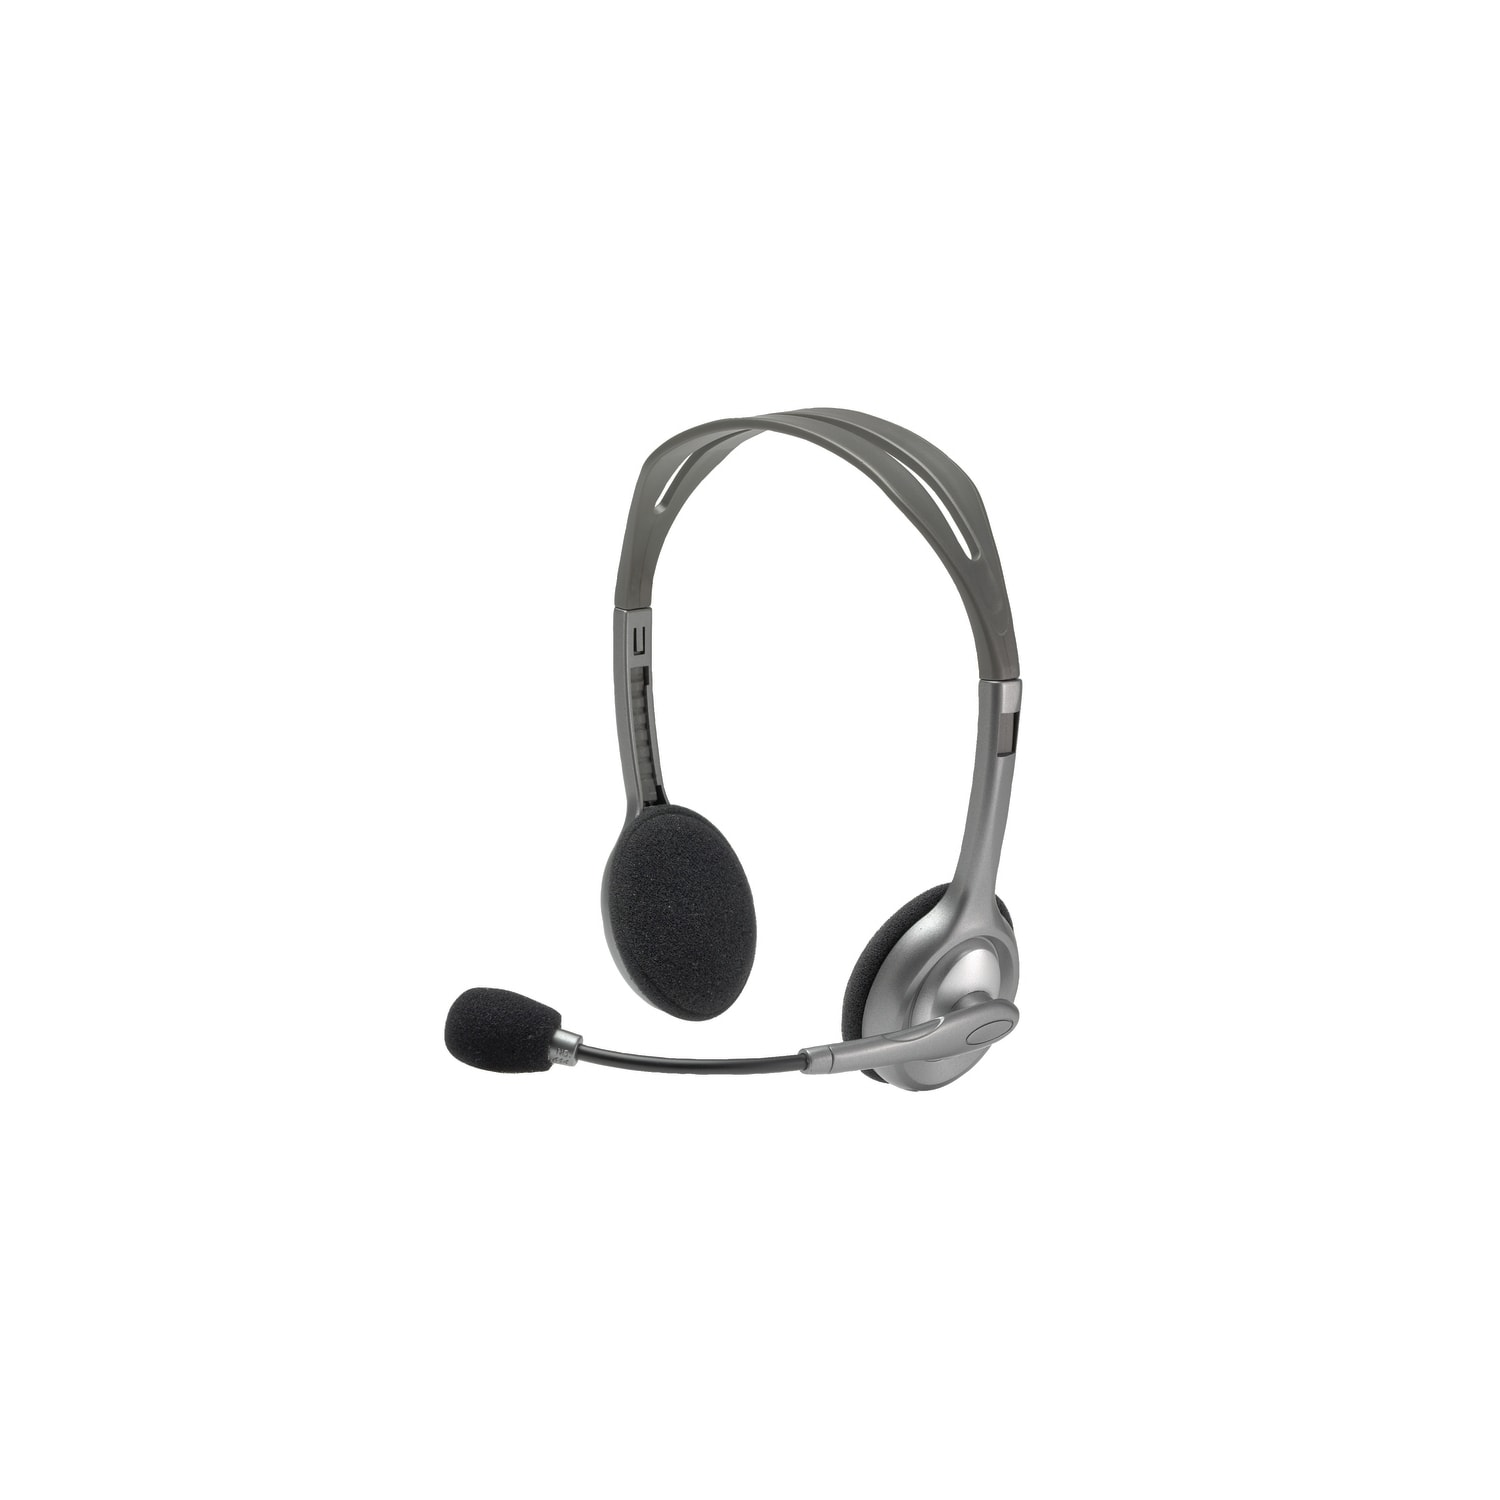 e5417637d3c Buy Logitech H110 Wired Stereo Headset - Over-the-head - Semi-open ...